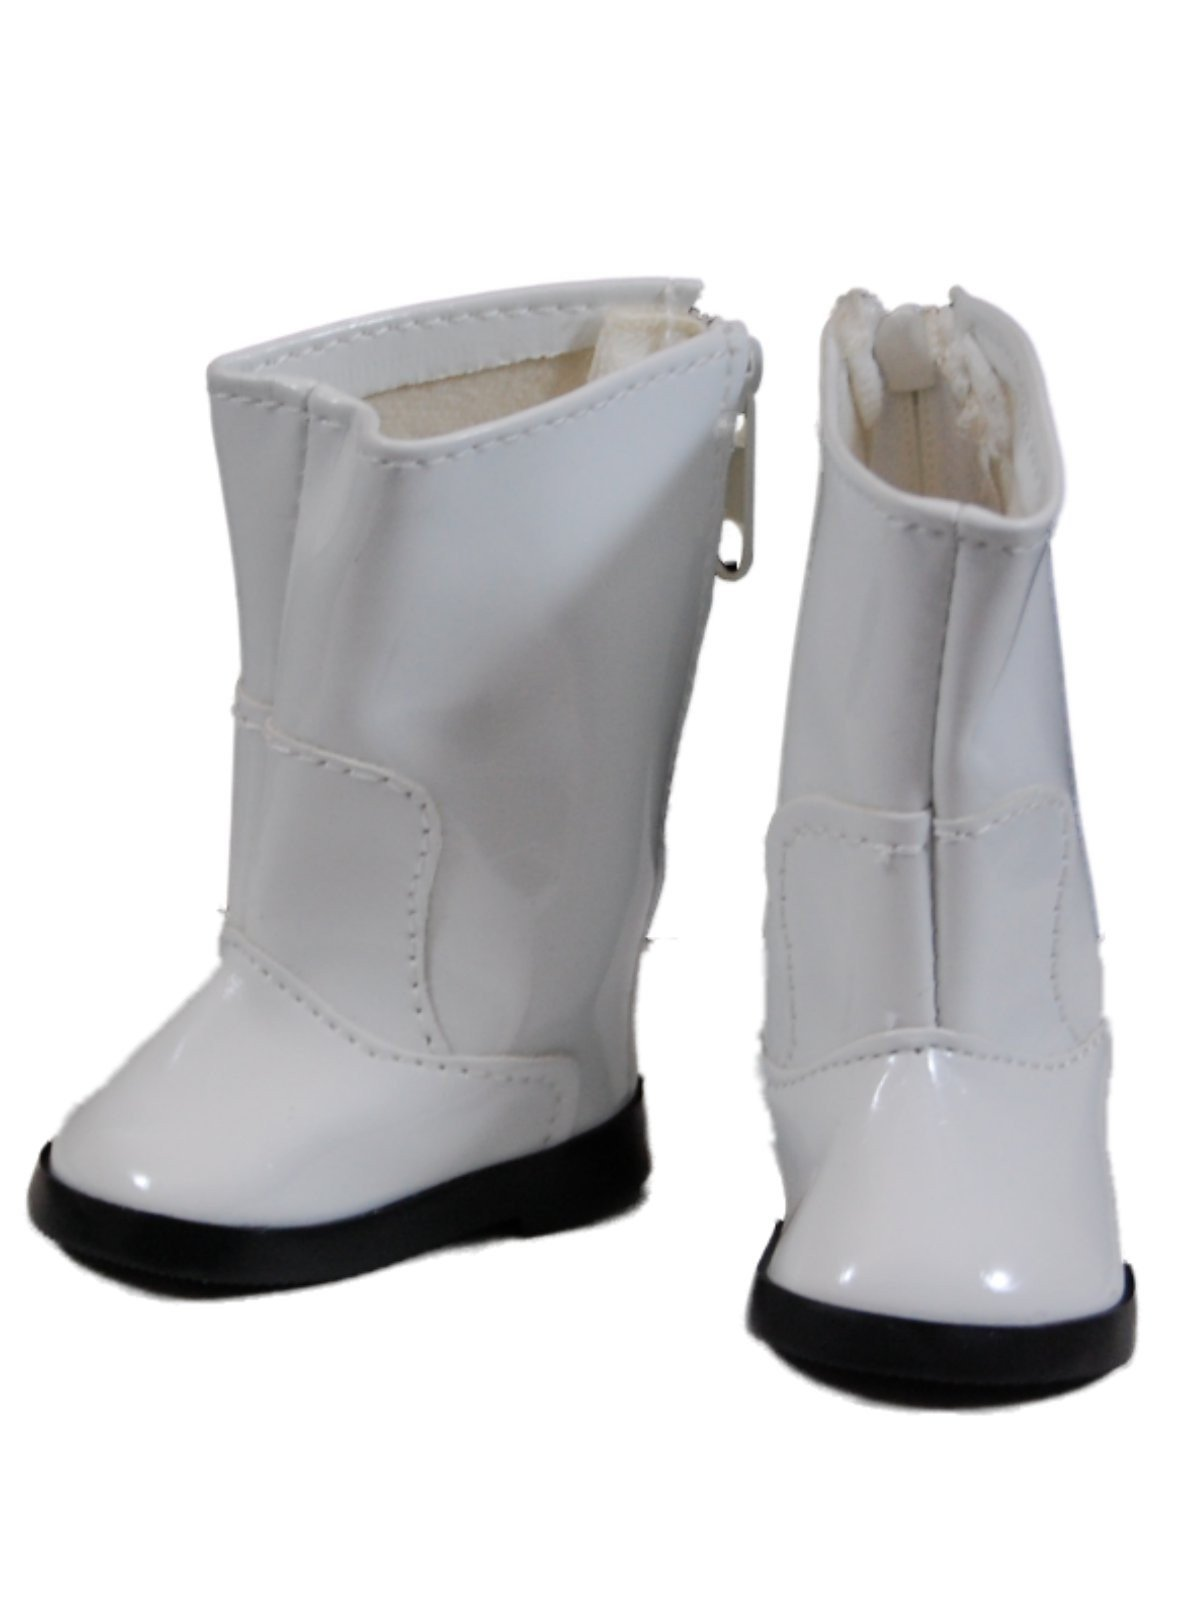 """White Go Go Boots Shoes For 18"""" American Girl¨ Doll Clothes"""